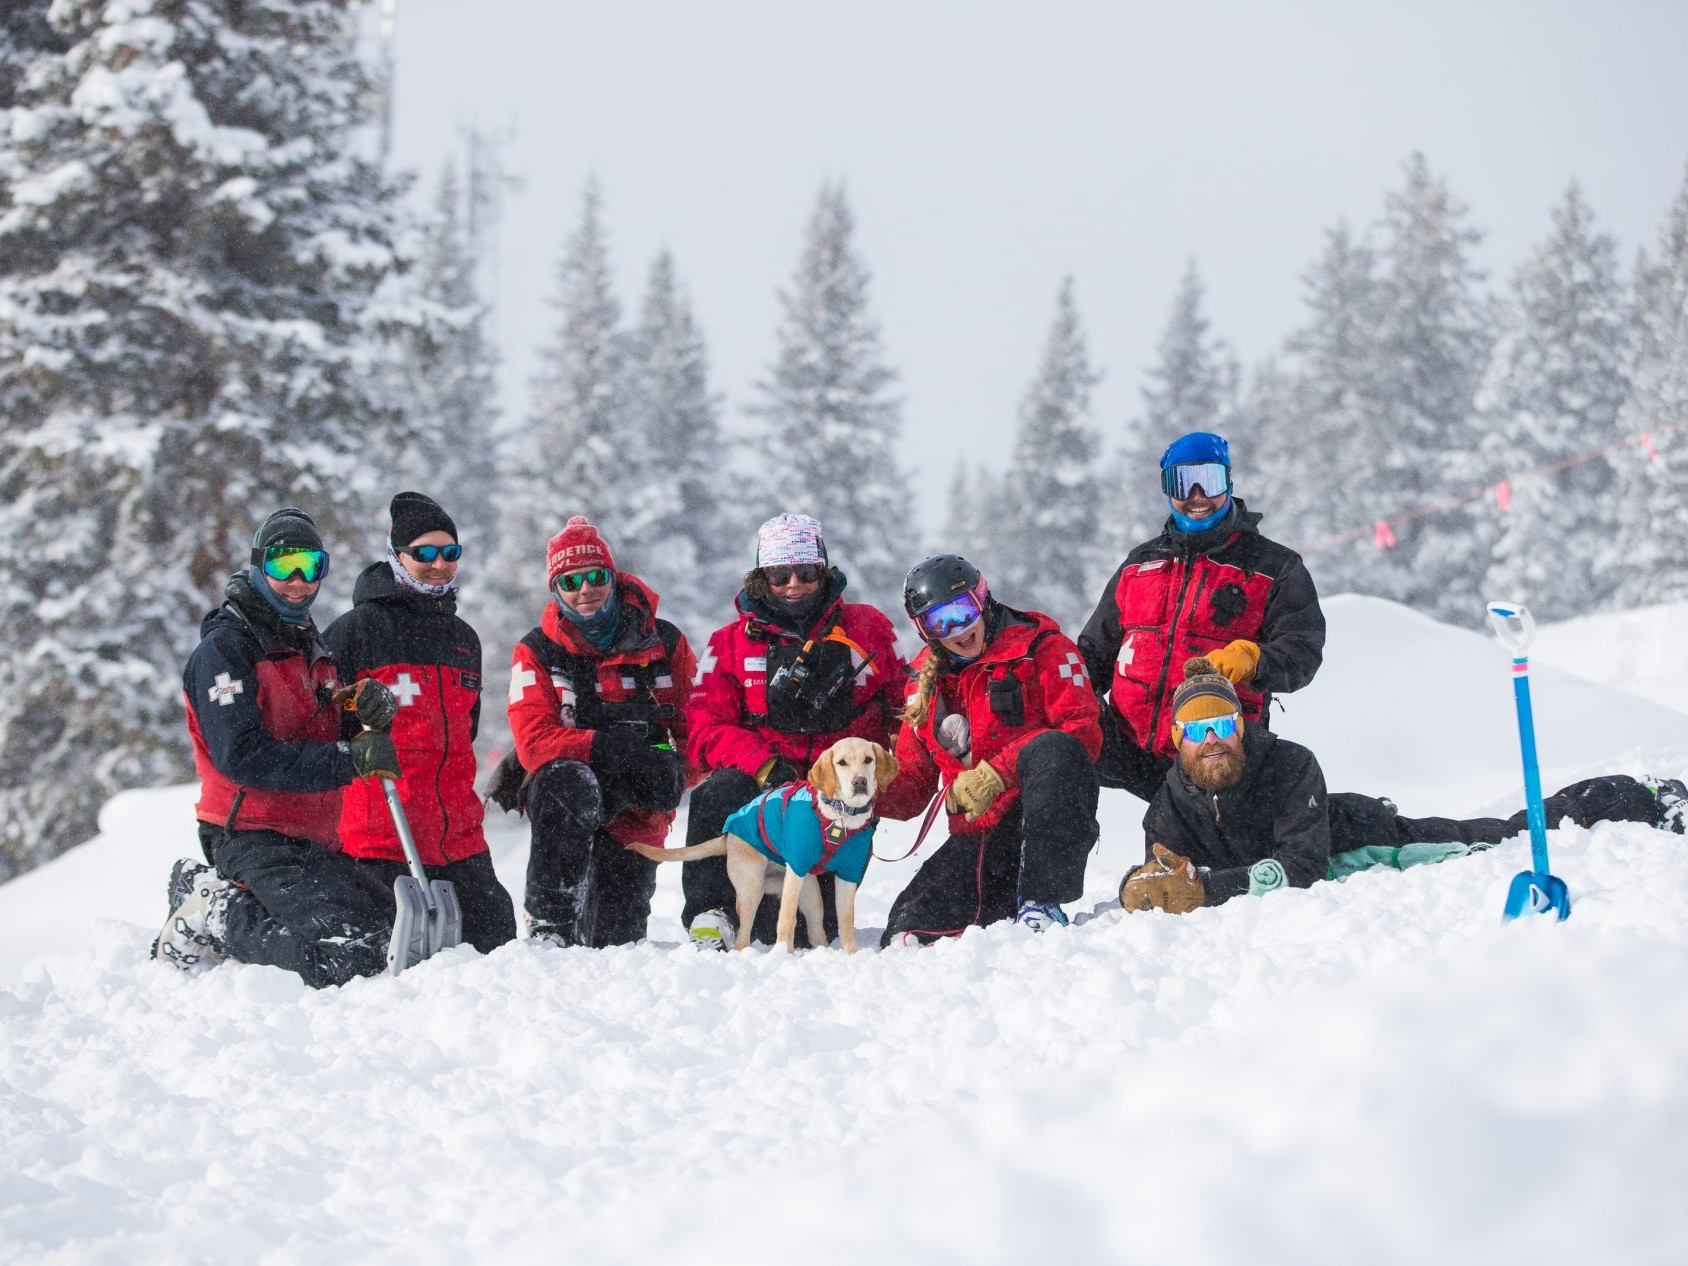 Dog handler group with avalanche puppy in training